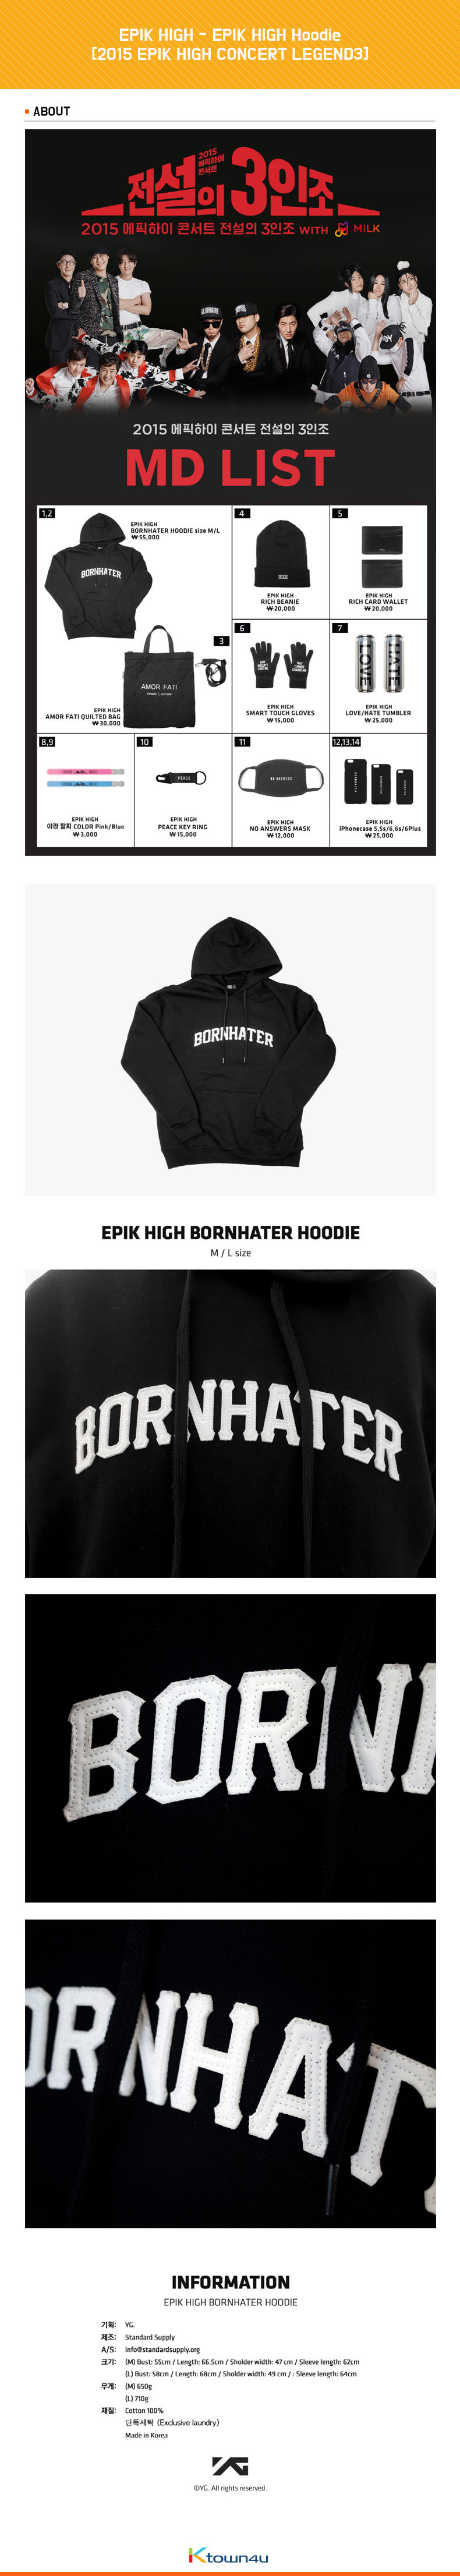 EPIK HIGH - EPIK HIGH Hoodie [2015 EPIK HIGH CONCERT LEGEND3]